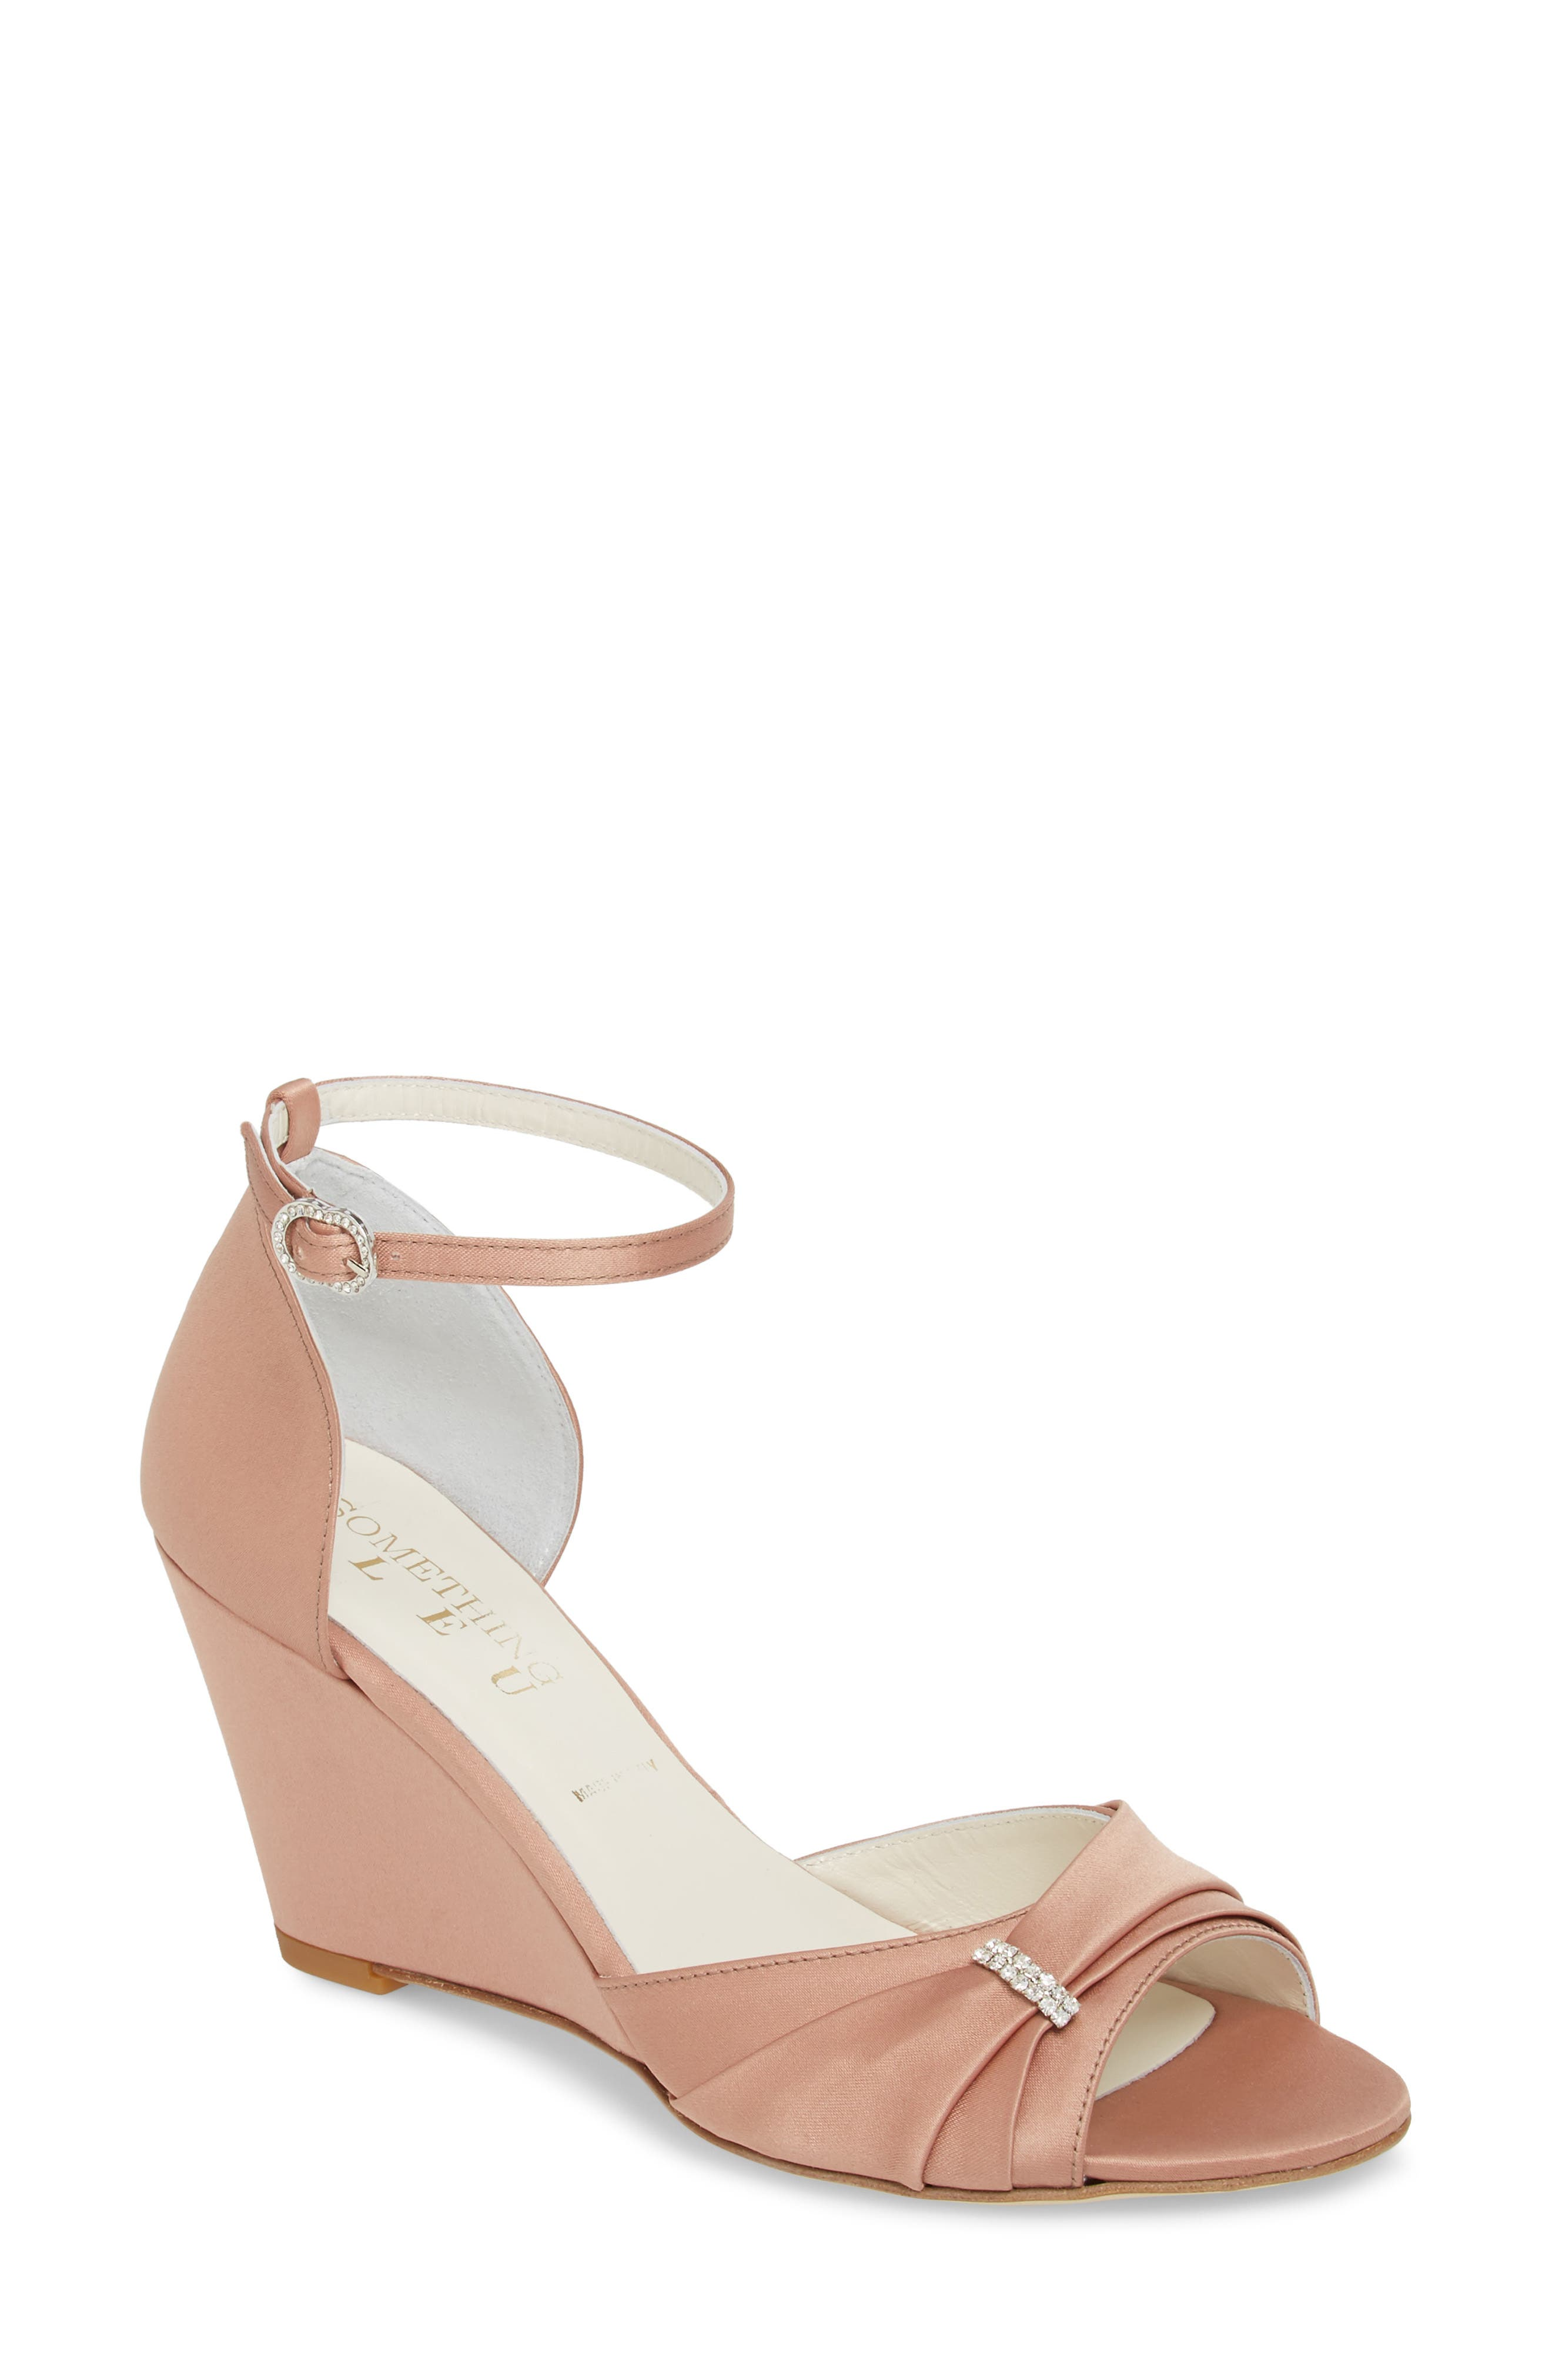 Queenie Ankle Strap Wedge Sandal,                             Main thumbnail 1, color,                             BLUSH SATIN